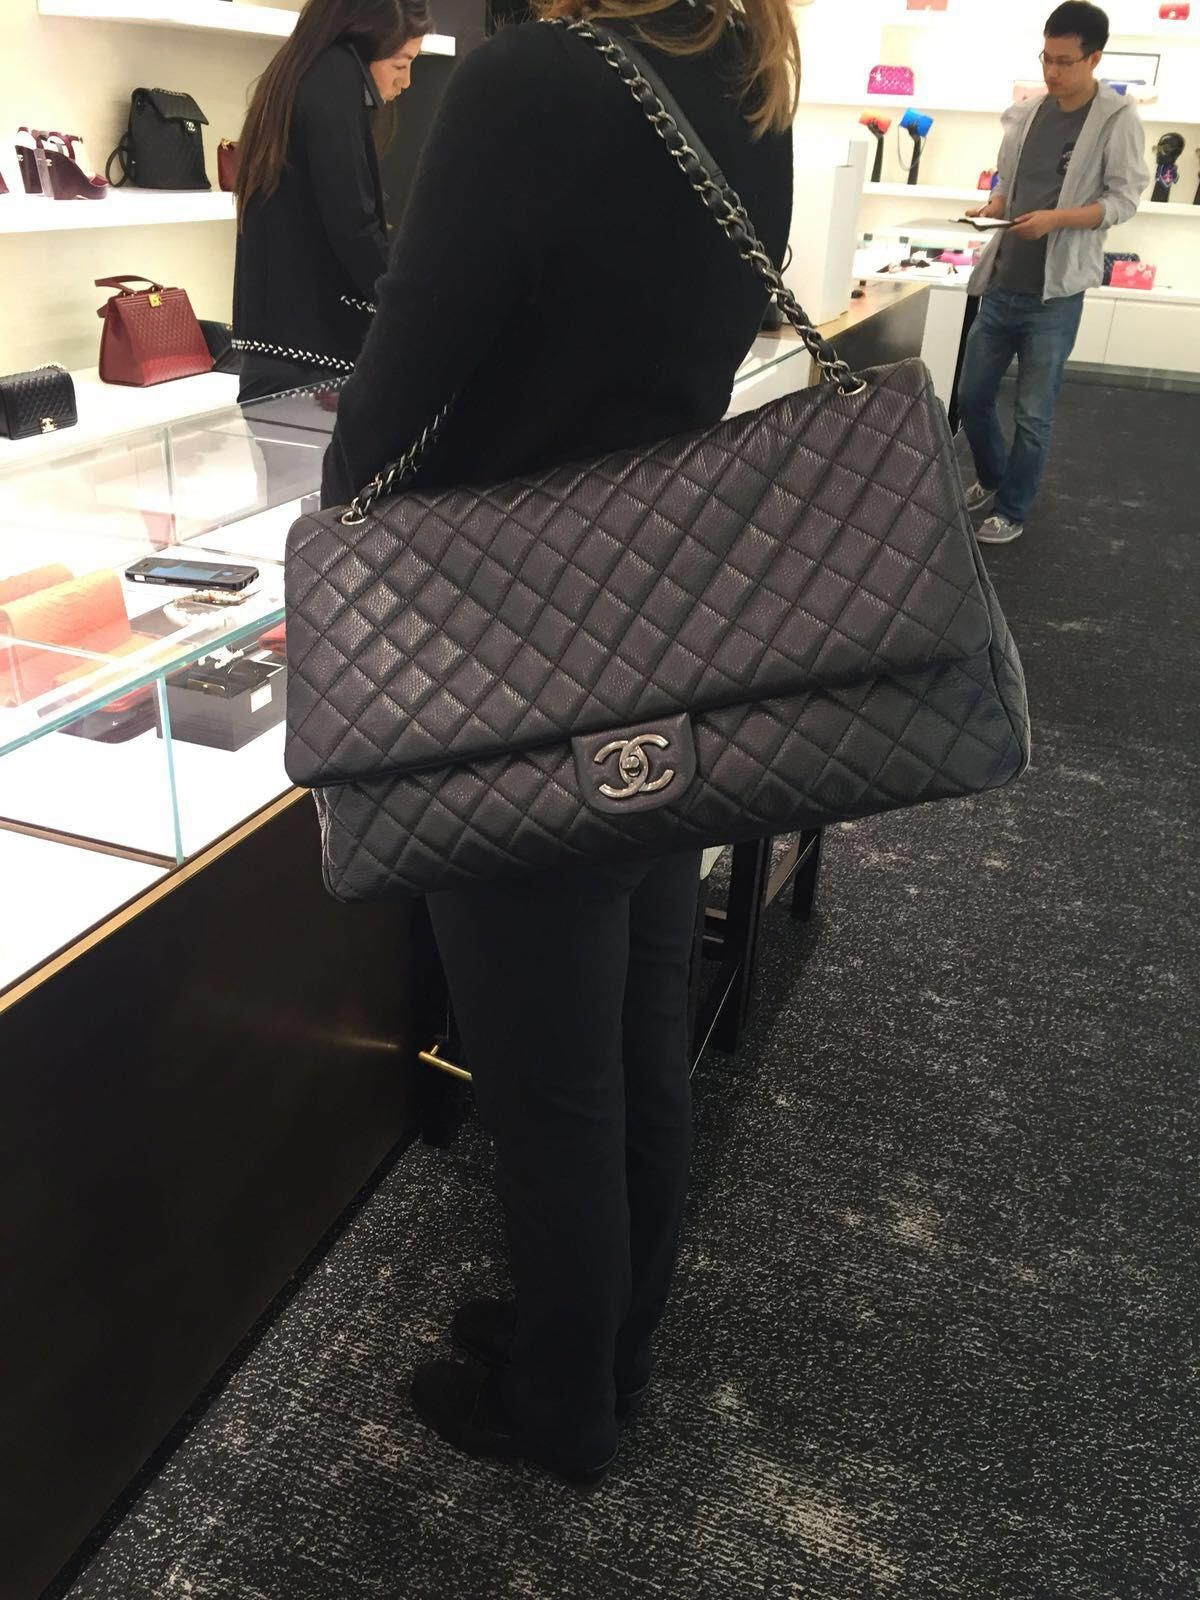 f64f0497fc78 Xxl chanel flap bag spring summer 2016 airport collection  Chanelhandbags